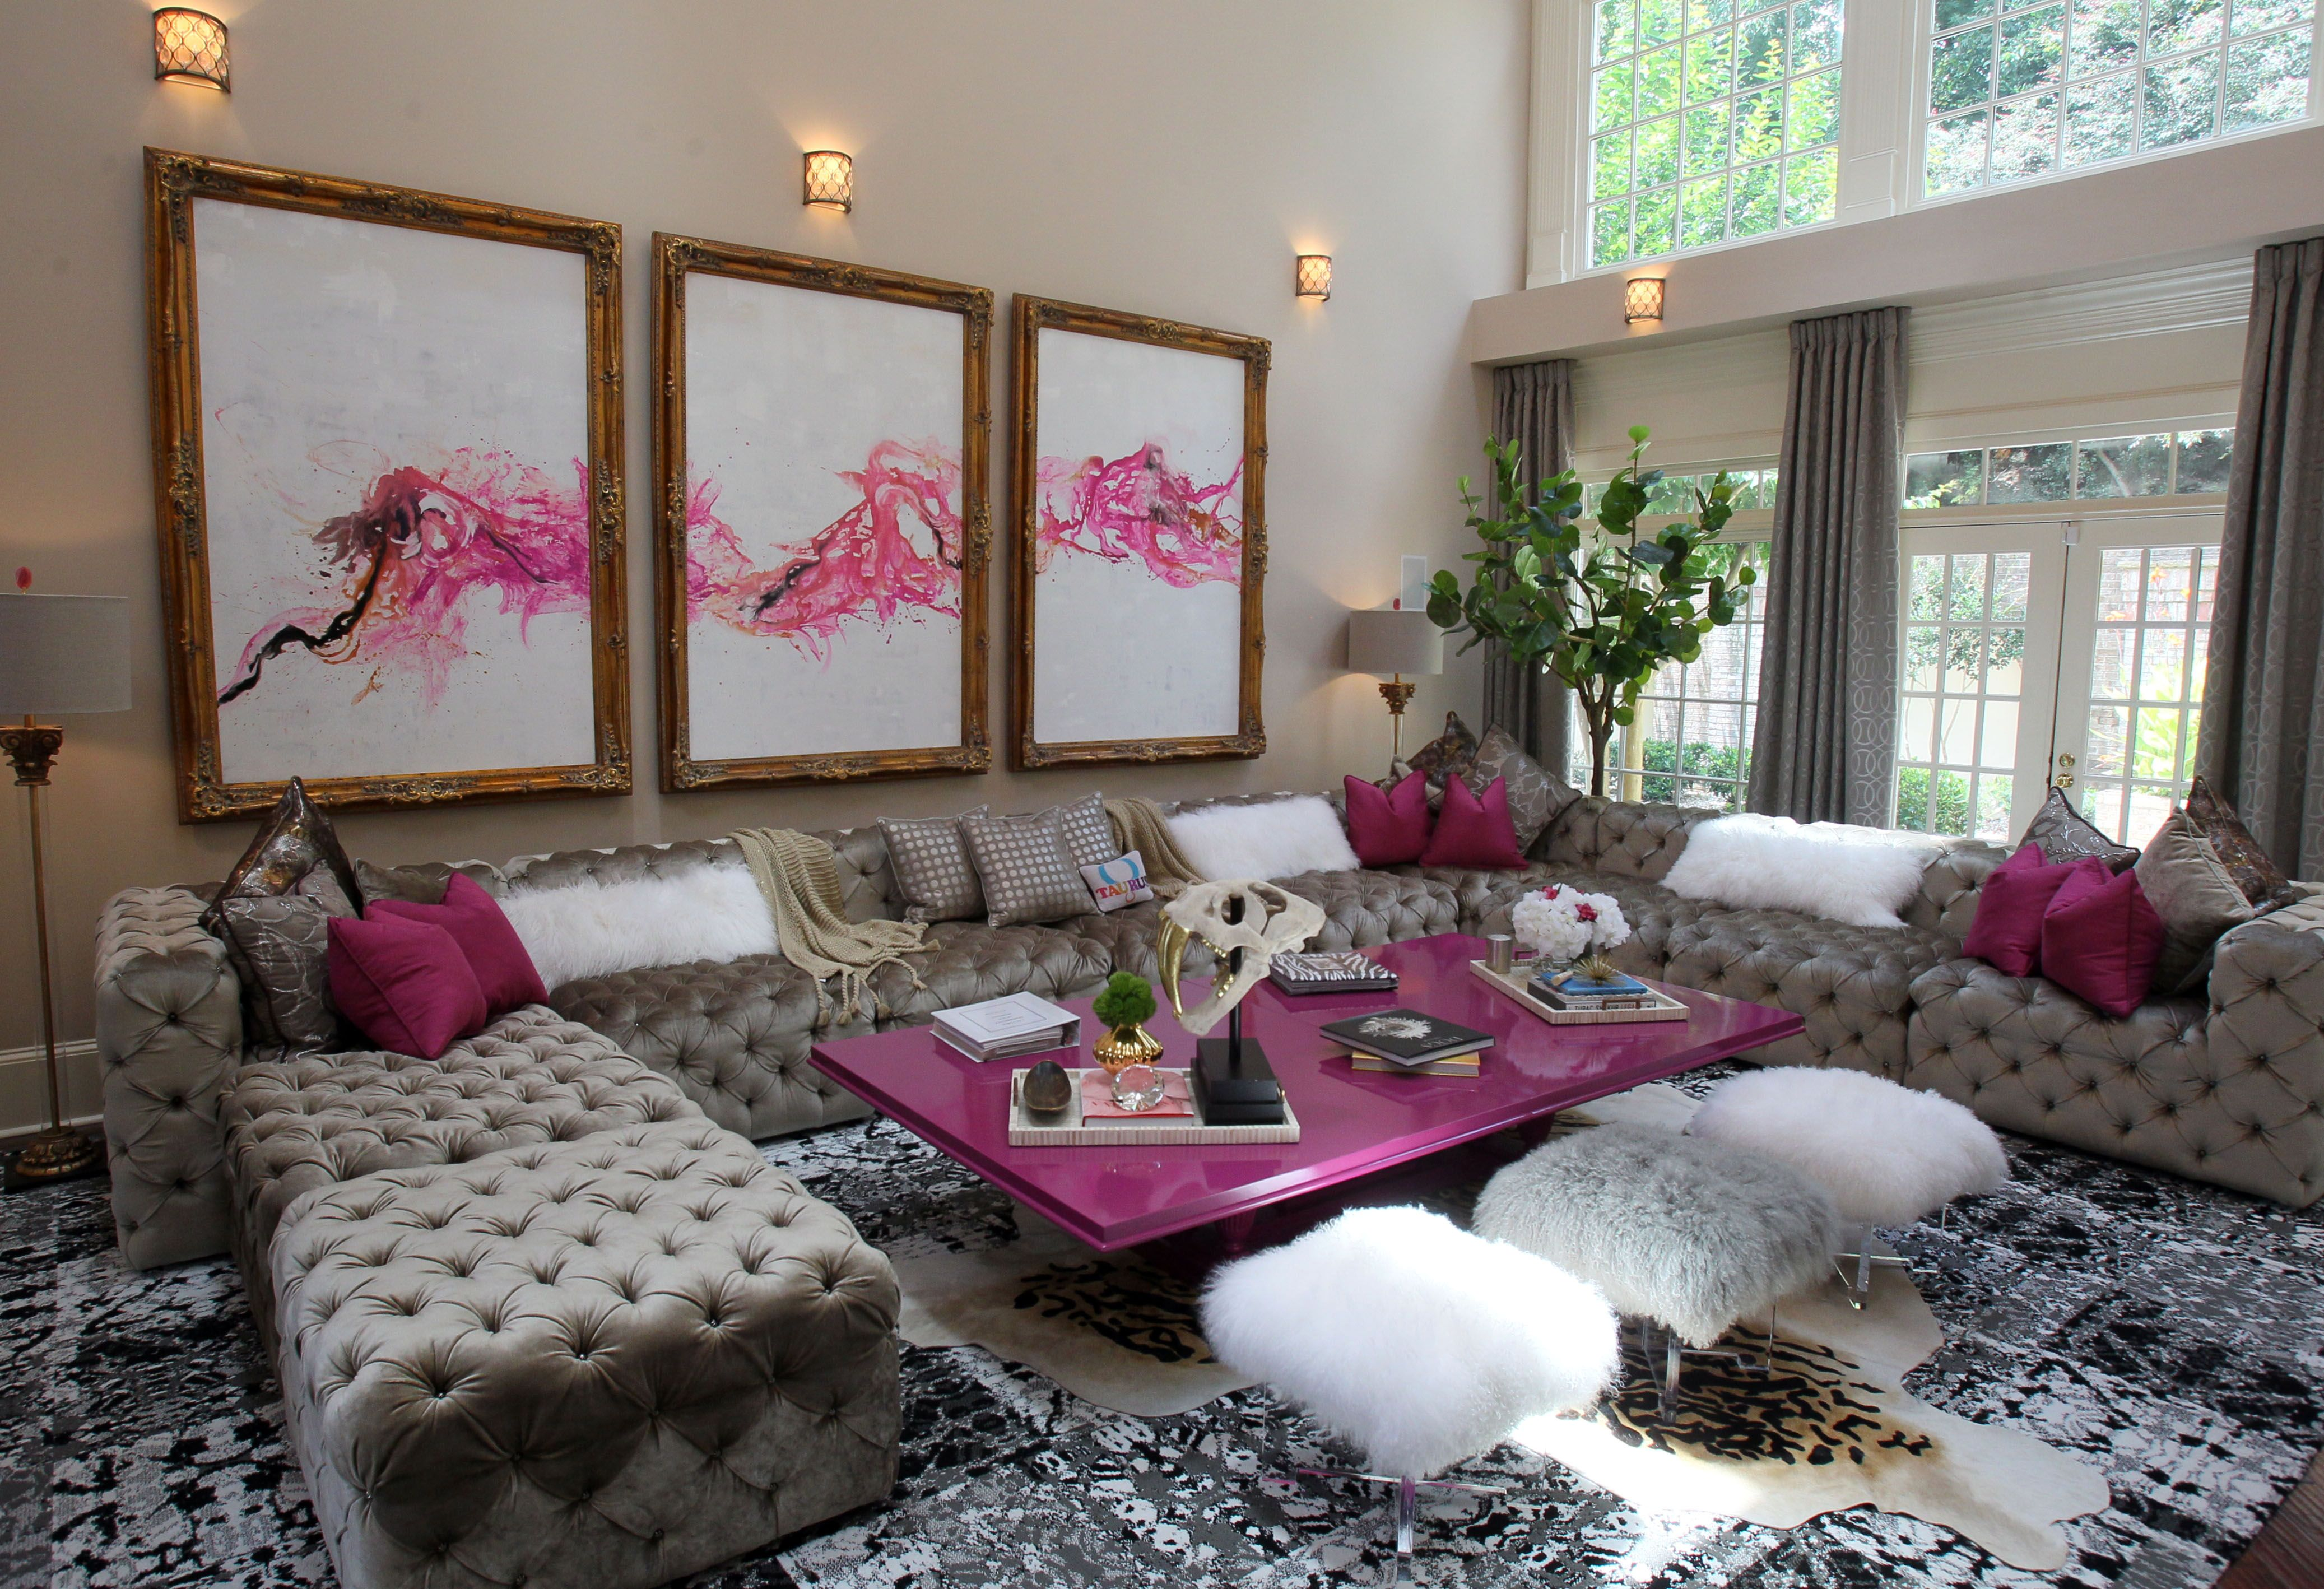 Home Furniture Living Room Furniture Atlanta photos our first celebrity private quarters gallery featuring kandi burruss living room love the pink accents